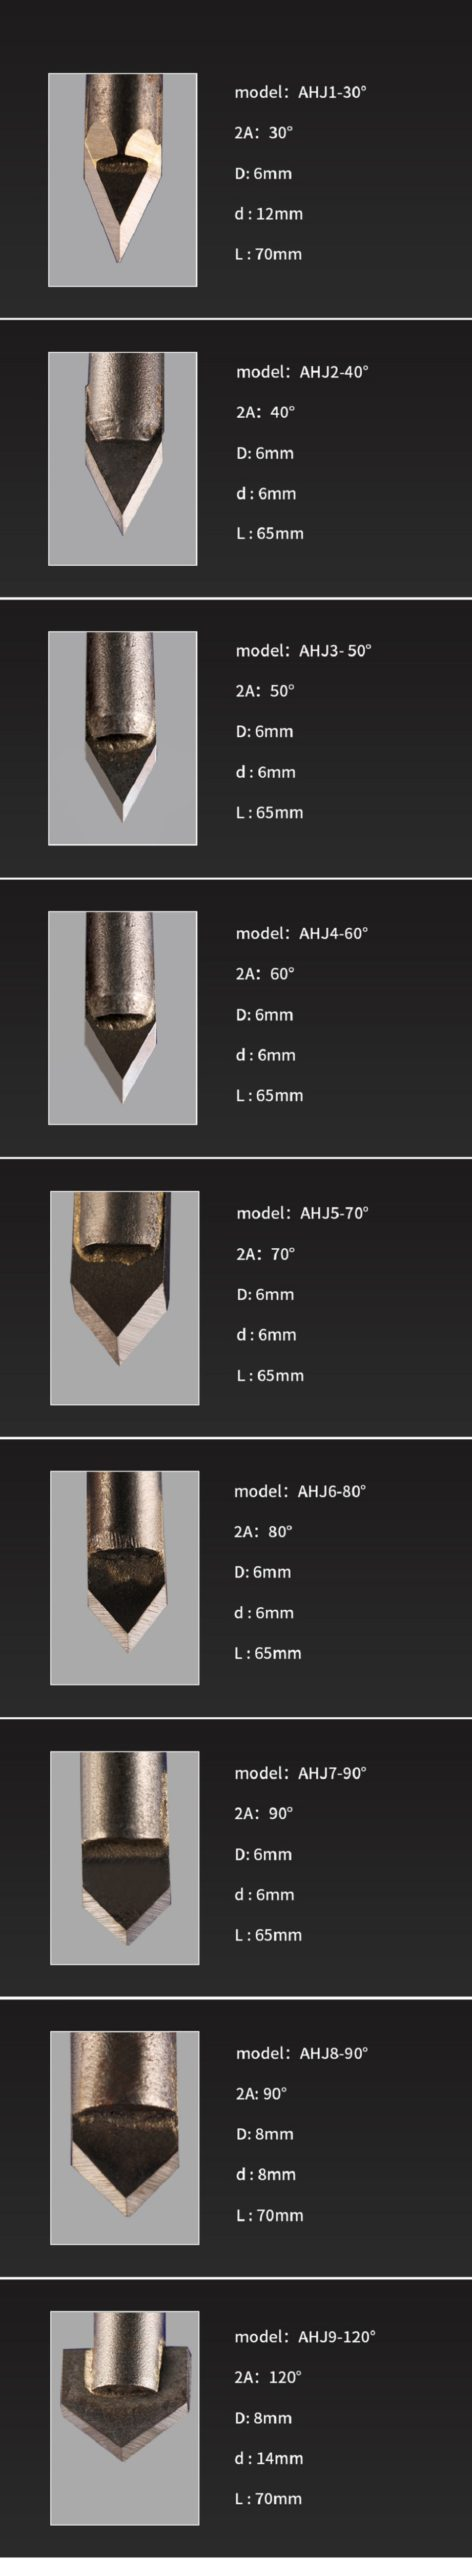 Carbide alloy stone engraving CNC Bits   Engraving cutter   Router Bits   Stone Carving Tools   6mm shank